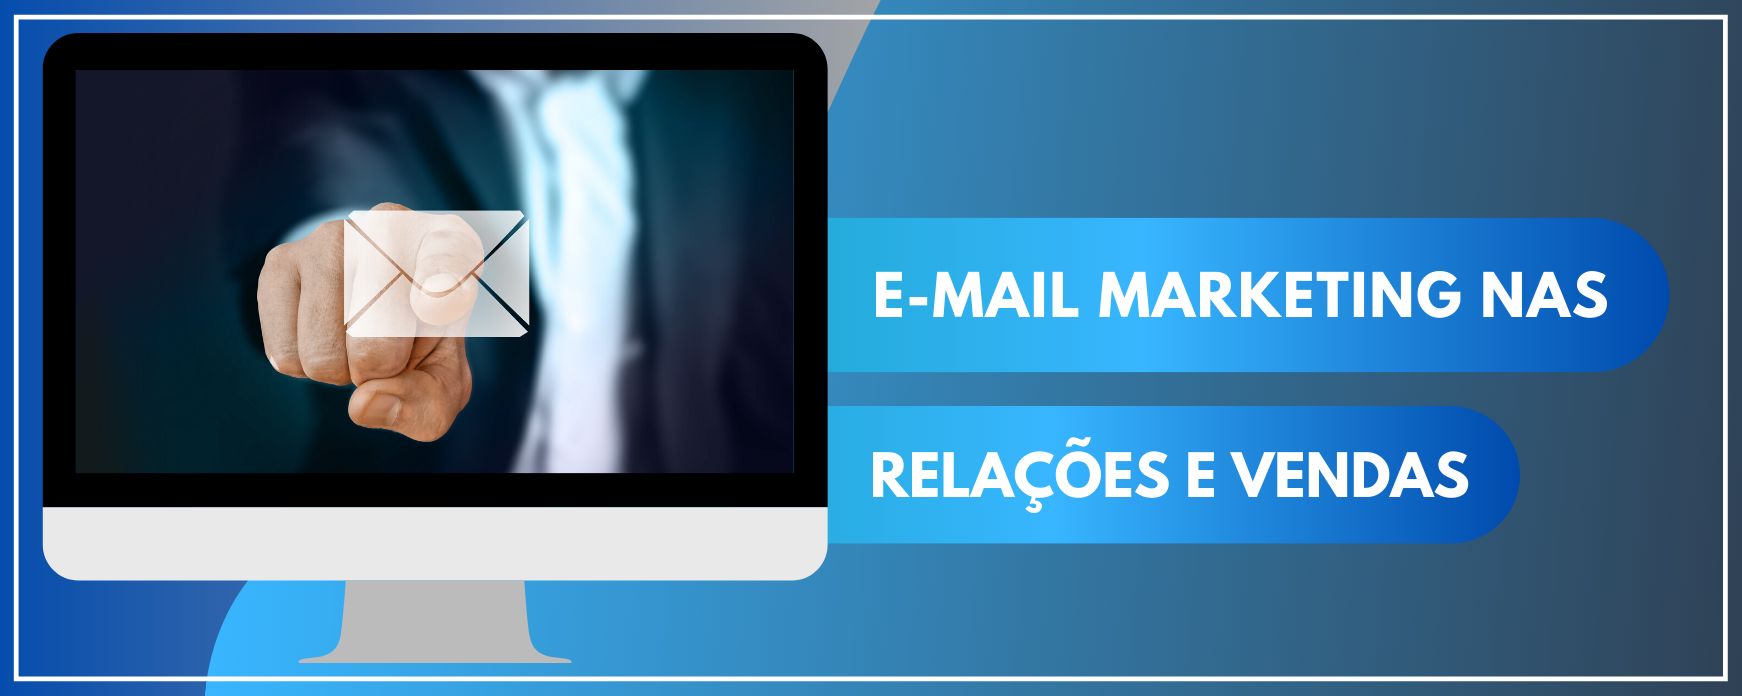 como usar o e-mail marketing para vender e se relacionar